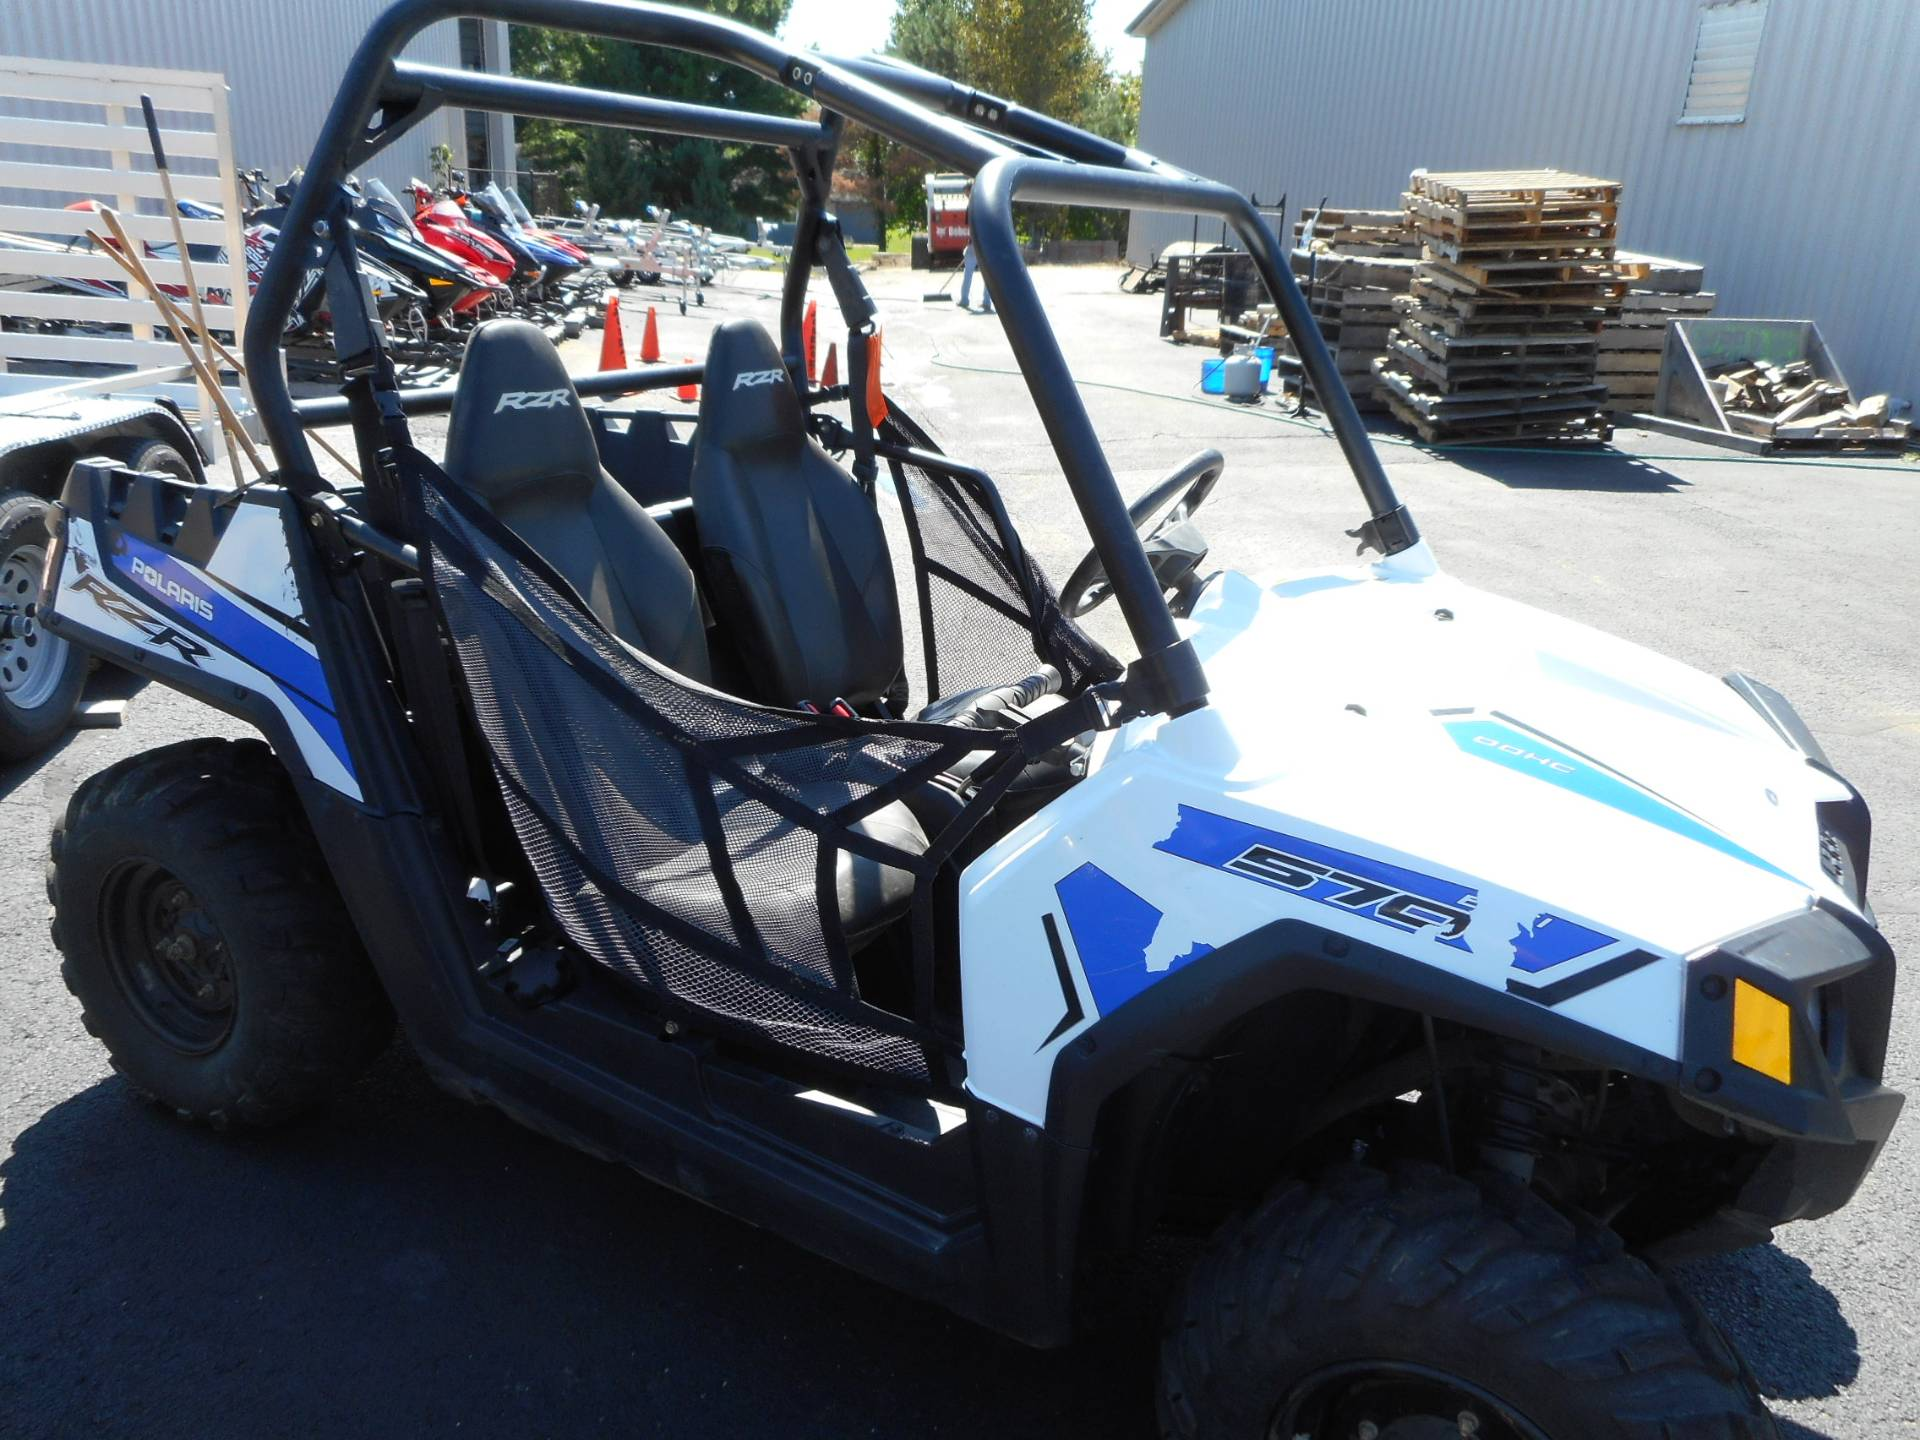 2017 Polaris RZR 570 in Belvidere, Illinois - Photo 2